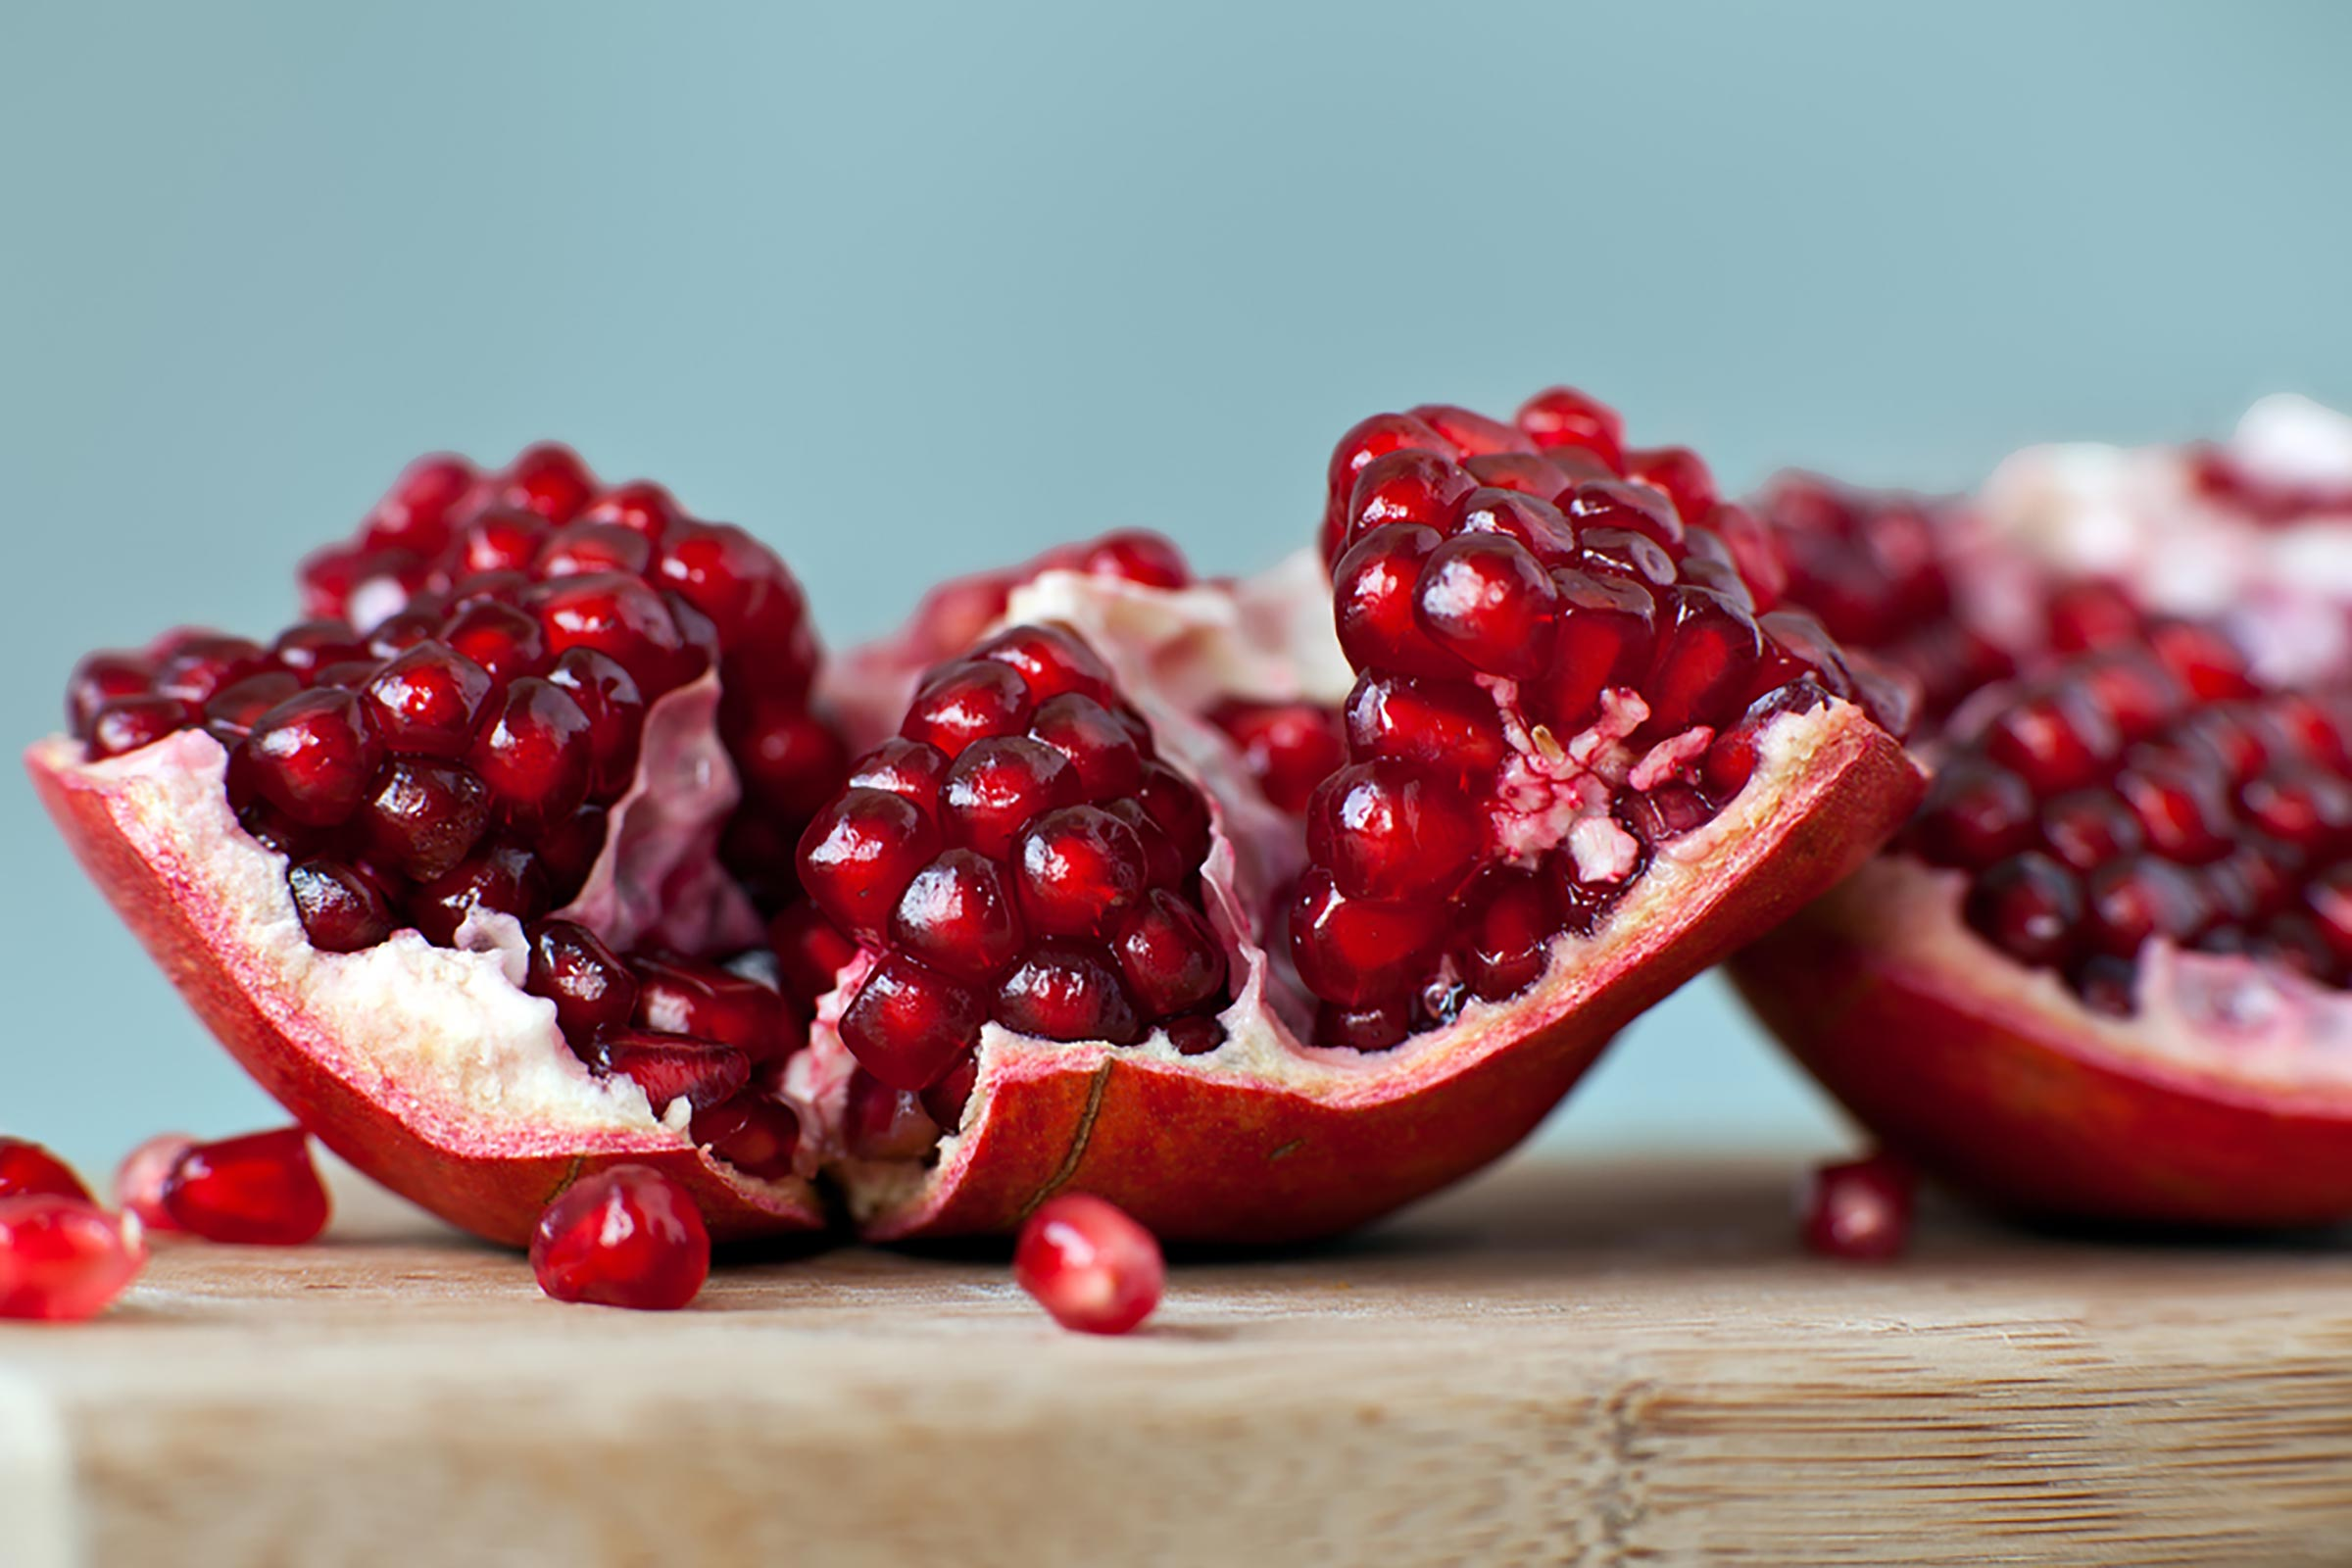 In Greece, a traditional housewarming gift is a pomegranate placed under or near the home altar of the house in order to bring good luck, fertility and abundance.